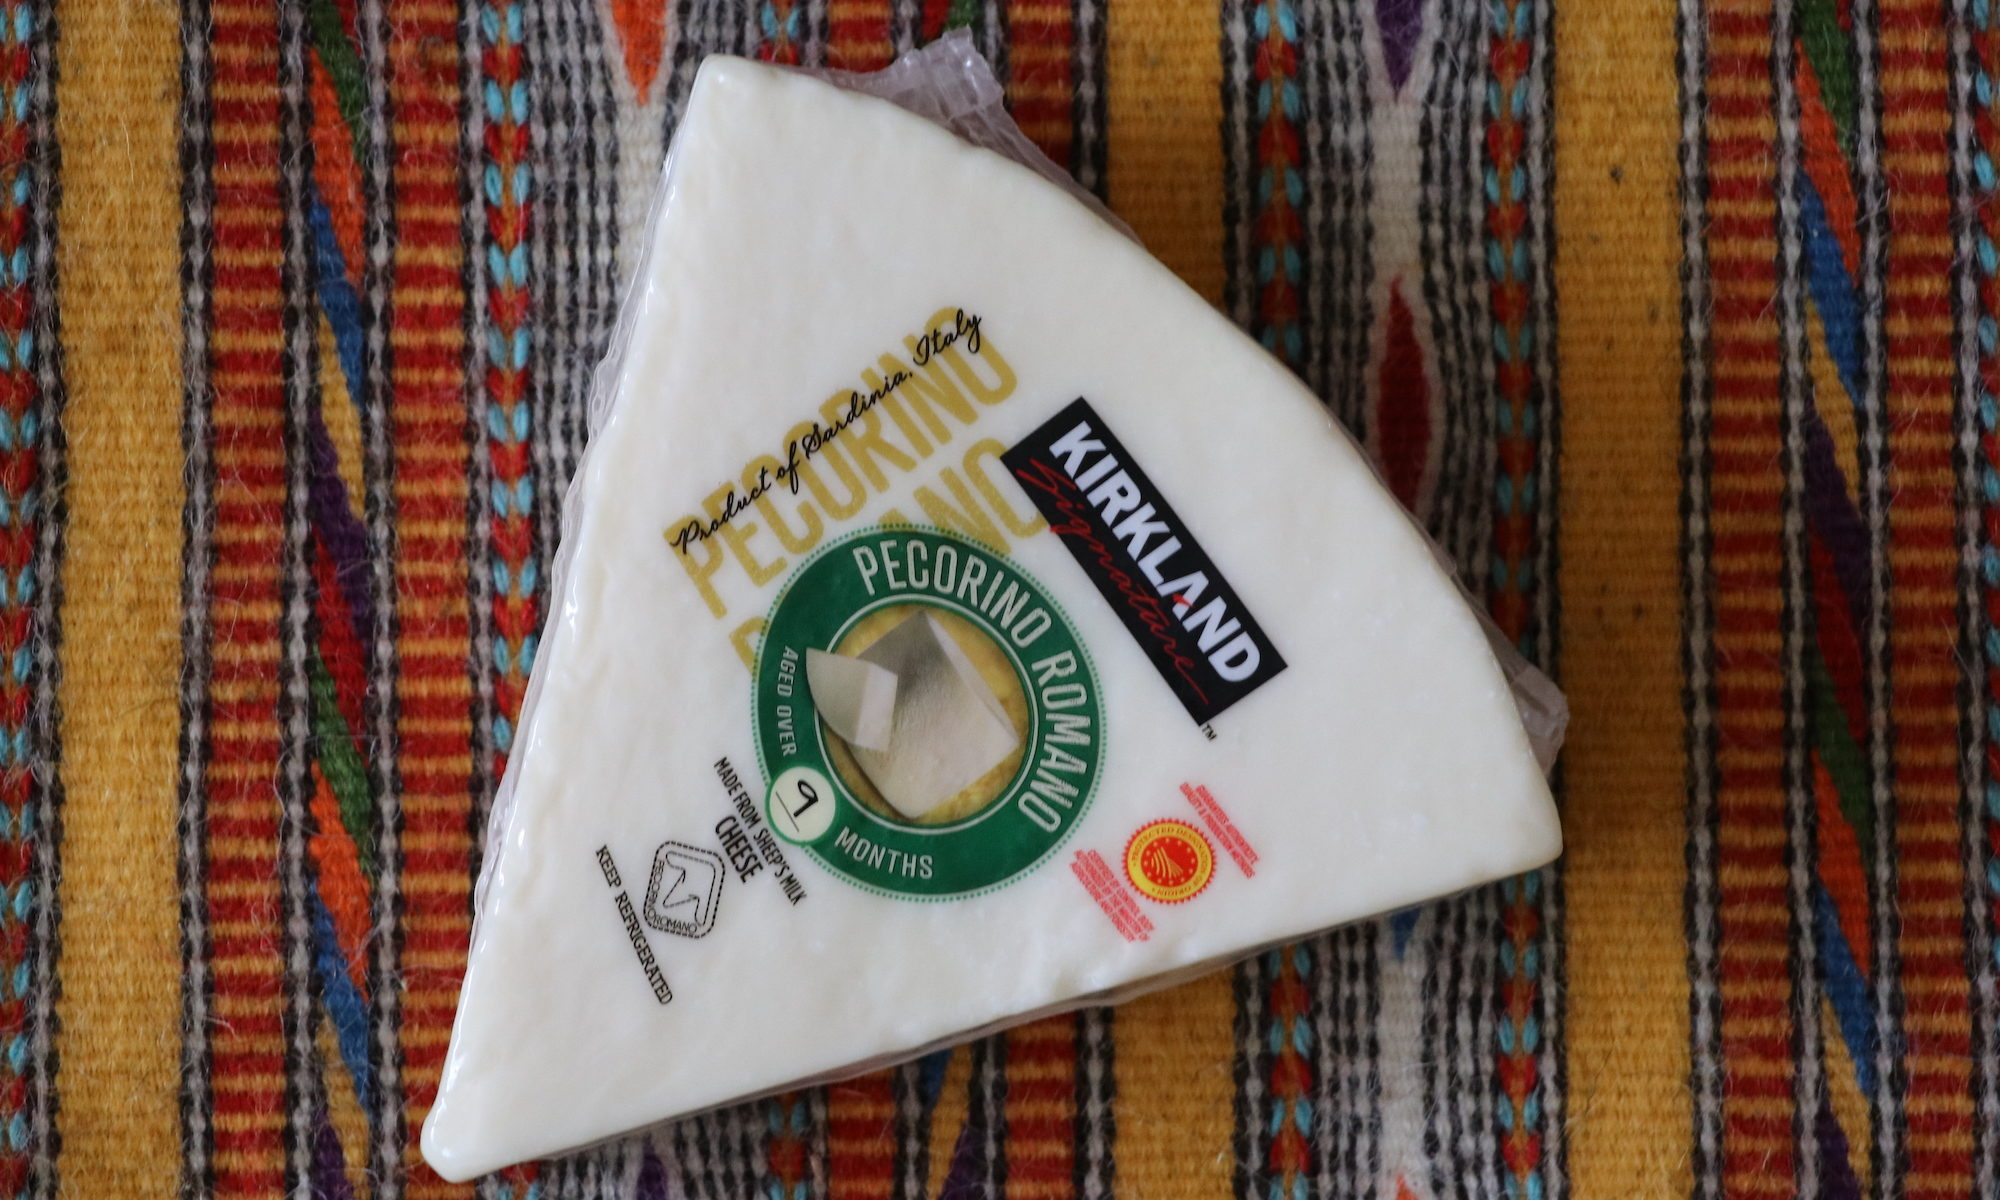 Pecorino Romano, as packaged and sold at Costco. Shown on a handwoven textile from Eugenia Pinna, from Nule, Sardegna.